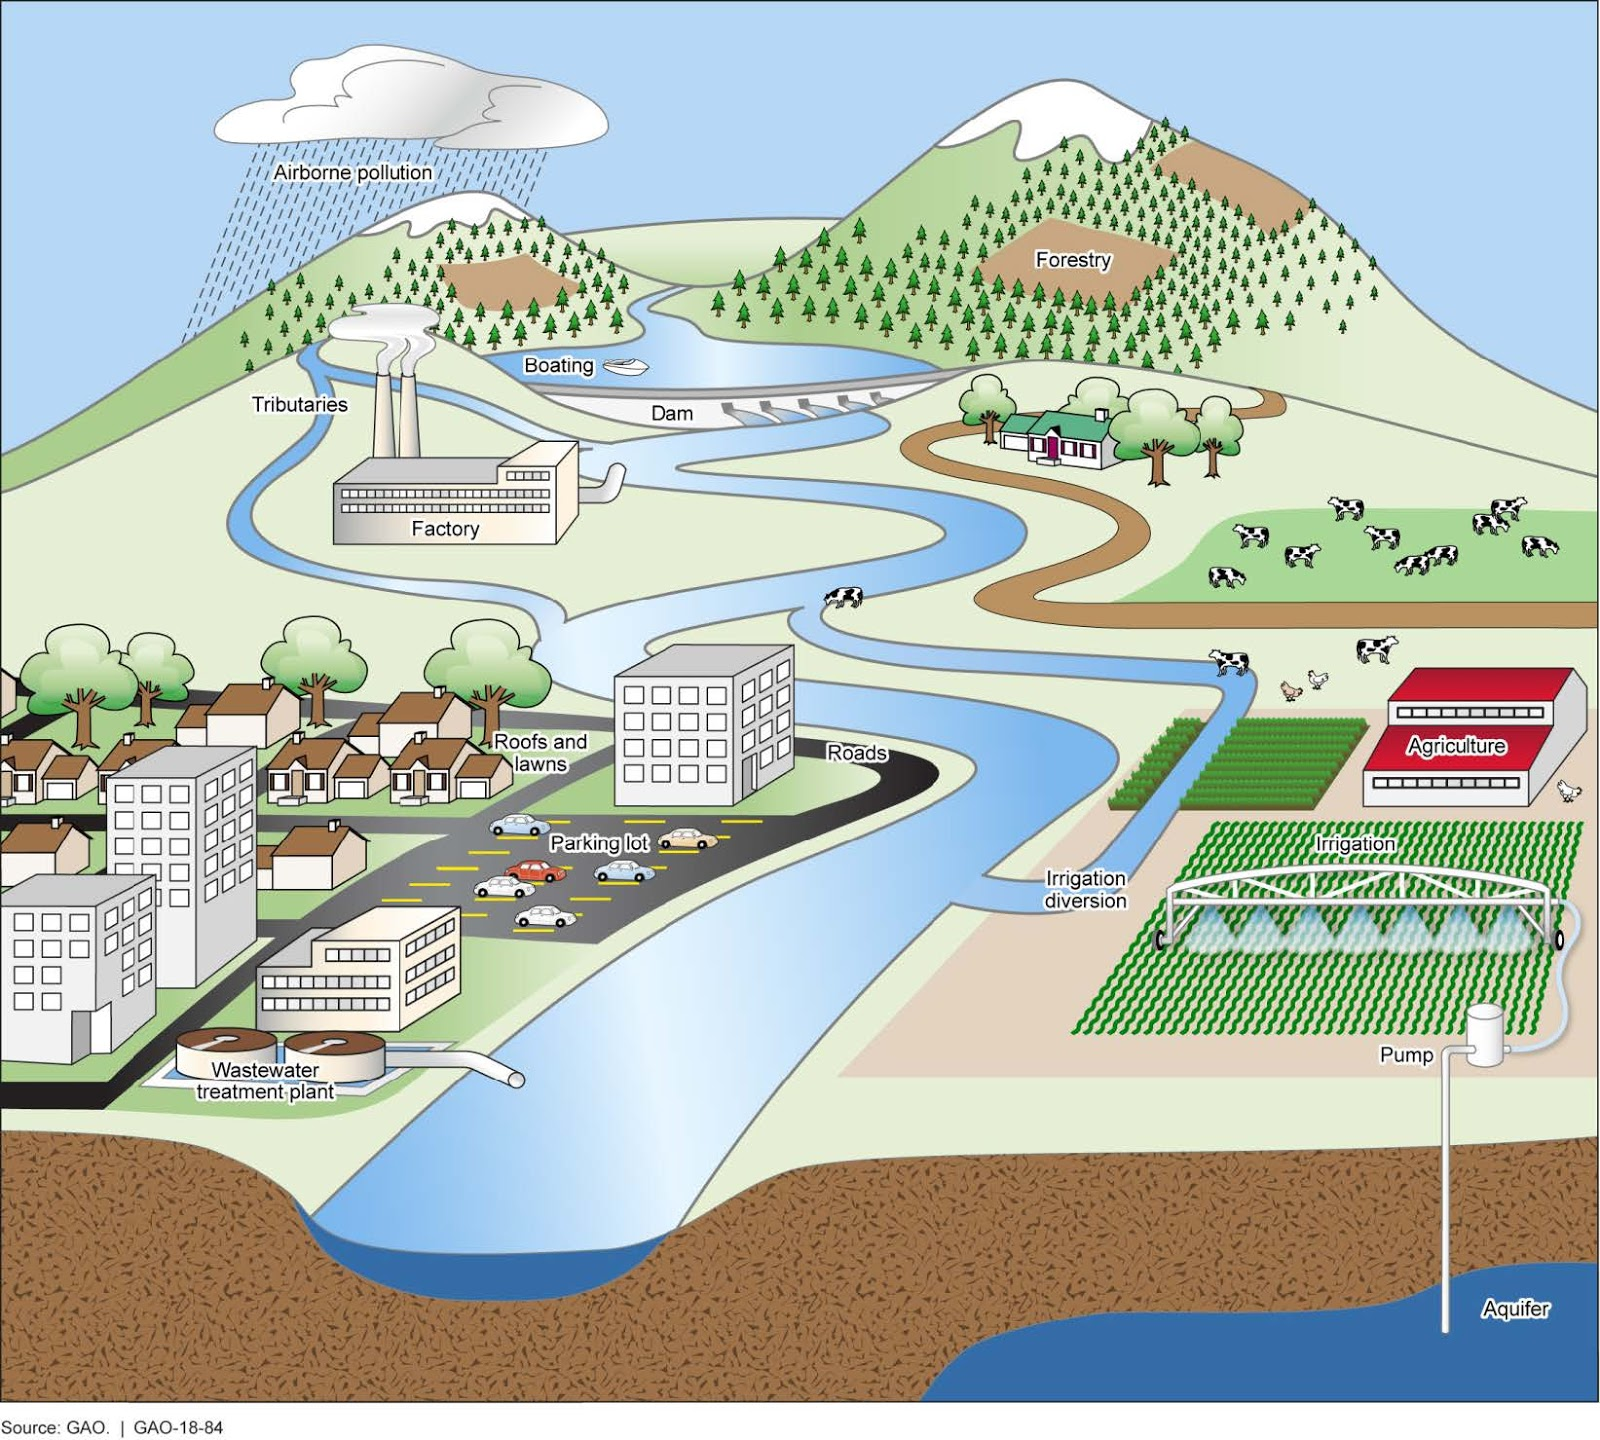 pollution project, water pollution project, air pollution project, environmental pollution project, plastic pollution project, soil pollution project, noise pollution project, water pollution project pdf, water pollution project for college pdf download, air pollution project pdf, plastic pollution project pdf, evs project on air pollution pdf, evs project on water pollution pdf, air pollution poster project, air pollution project for school students, water pollution drawing project, air pollution project for school, pollution project pdf,